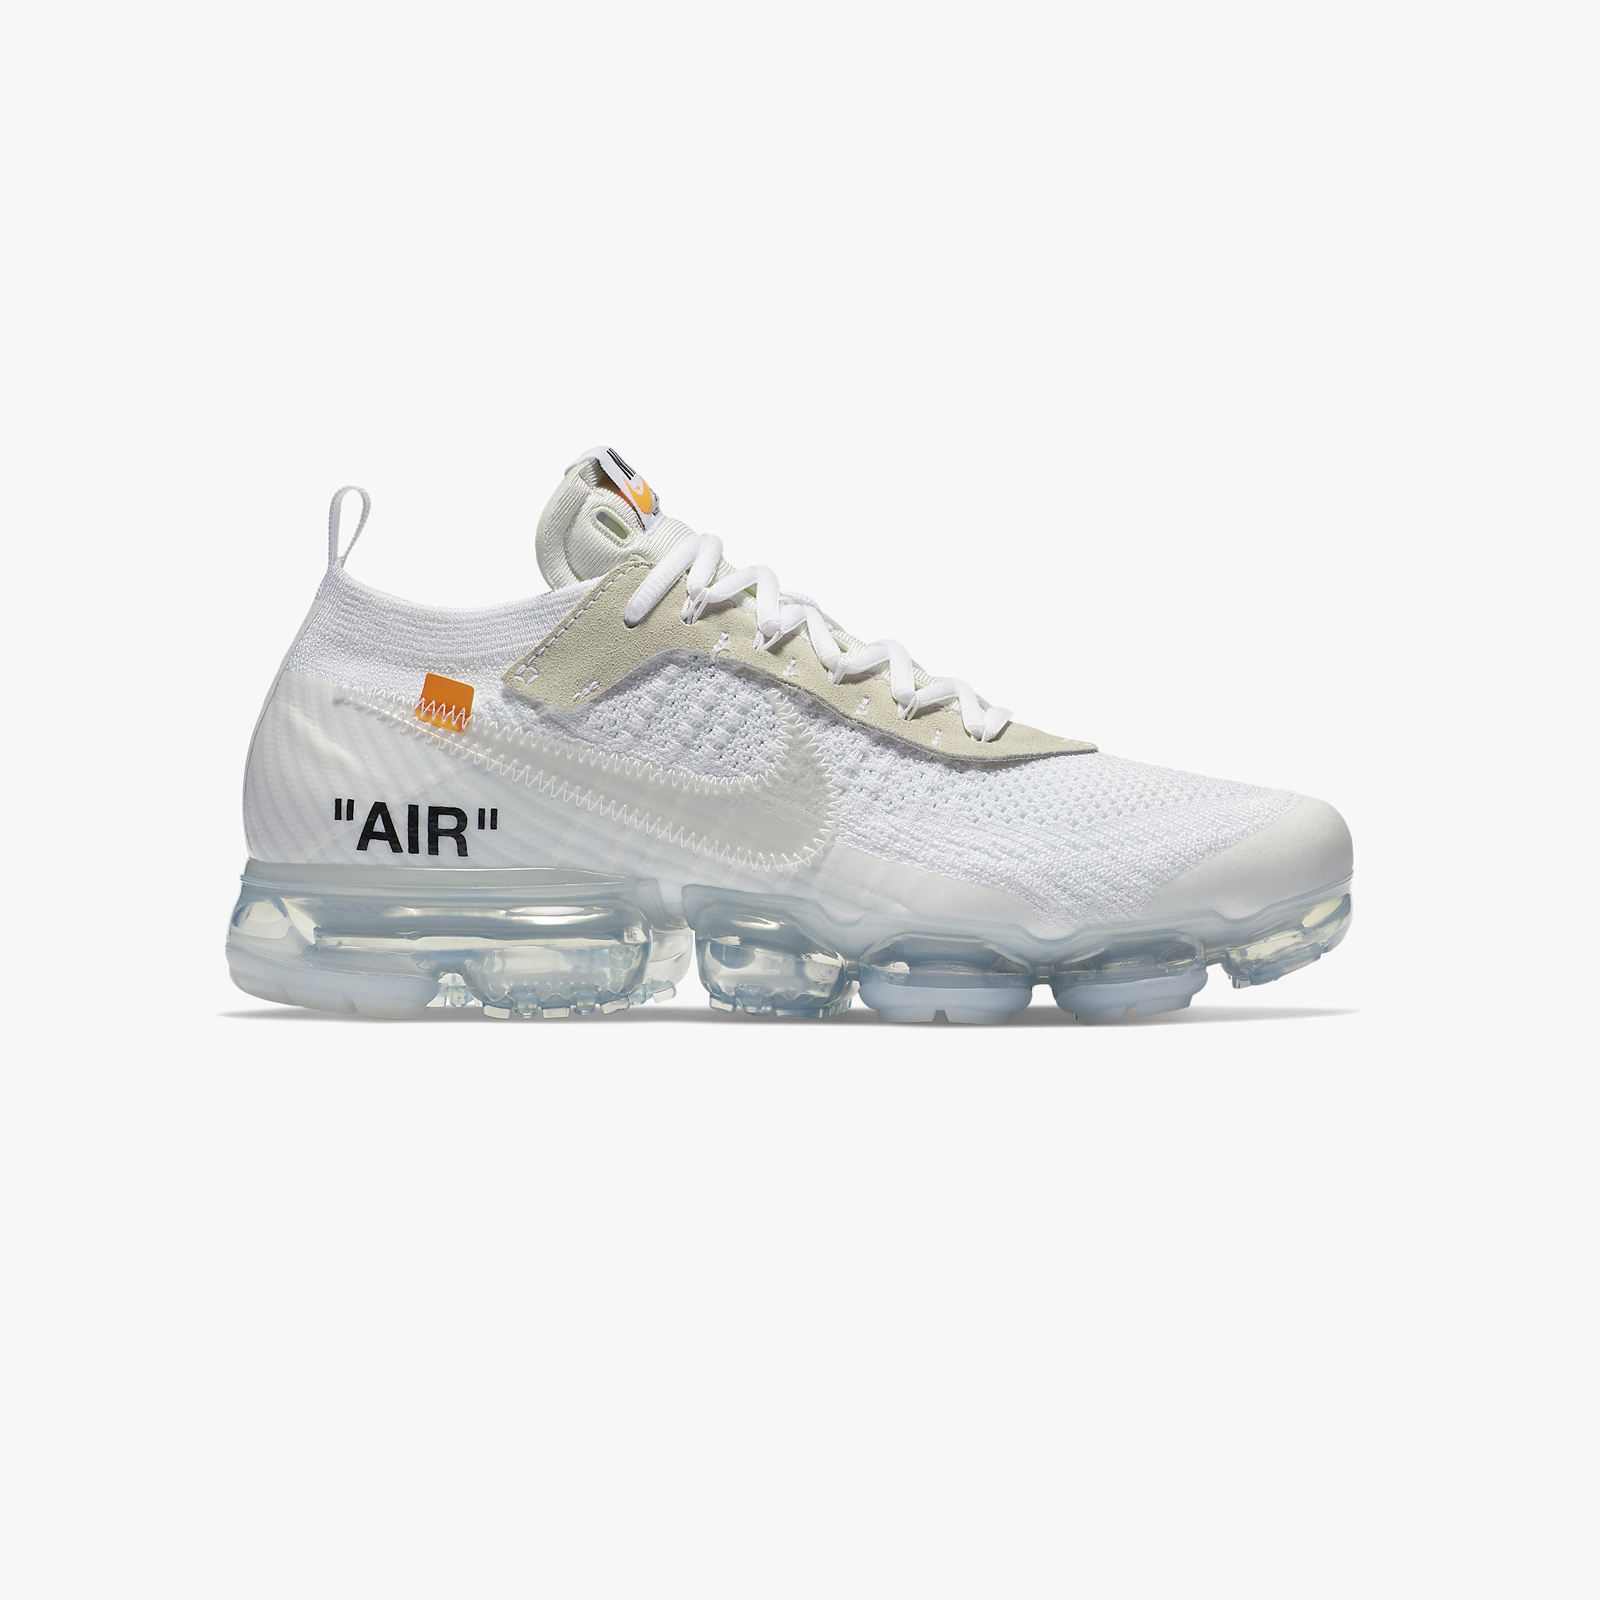 6be4dd187b9 Nike The 10  Air Vapormax FK - Aa3831-100 - Sneakersnstuff ...